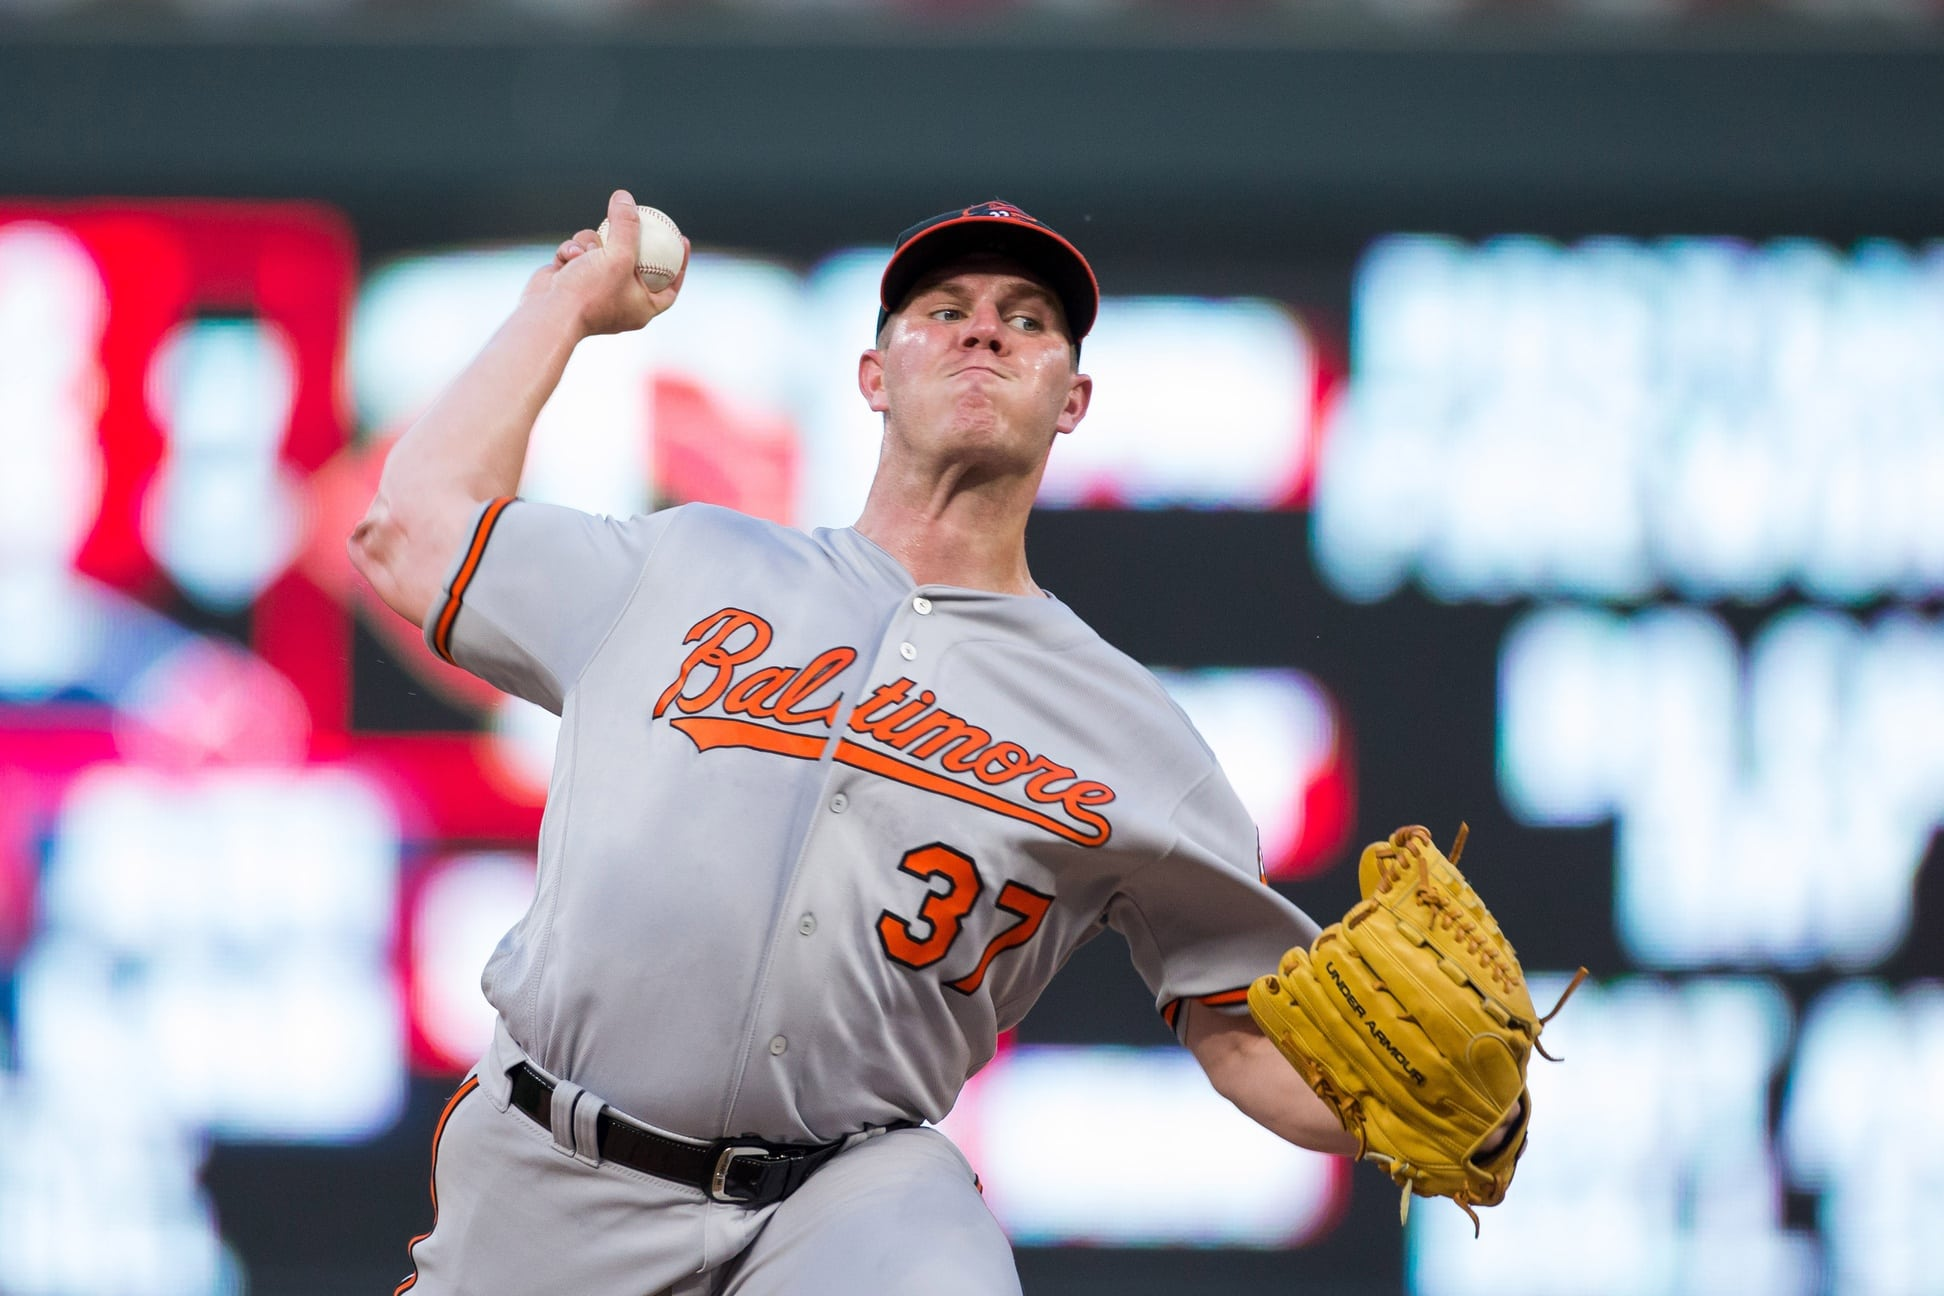 The Colorado Rockies have reportedly asked about Dylan Bundy.